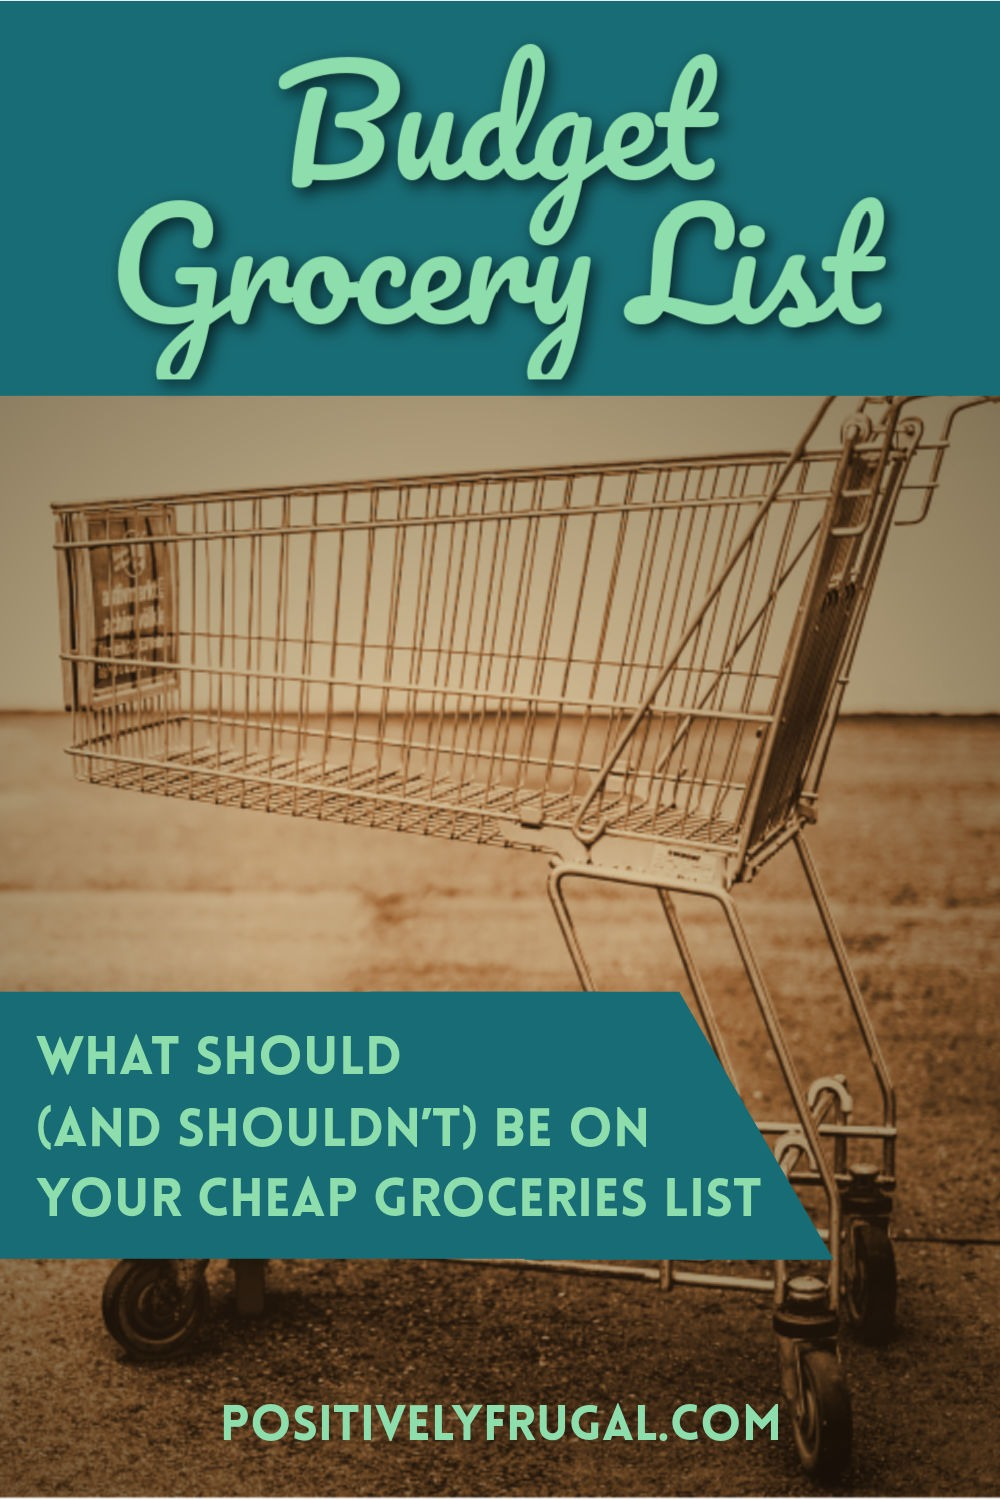 Budget Grocery List by PositivelyFrugal.com